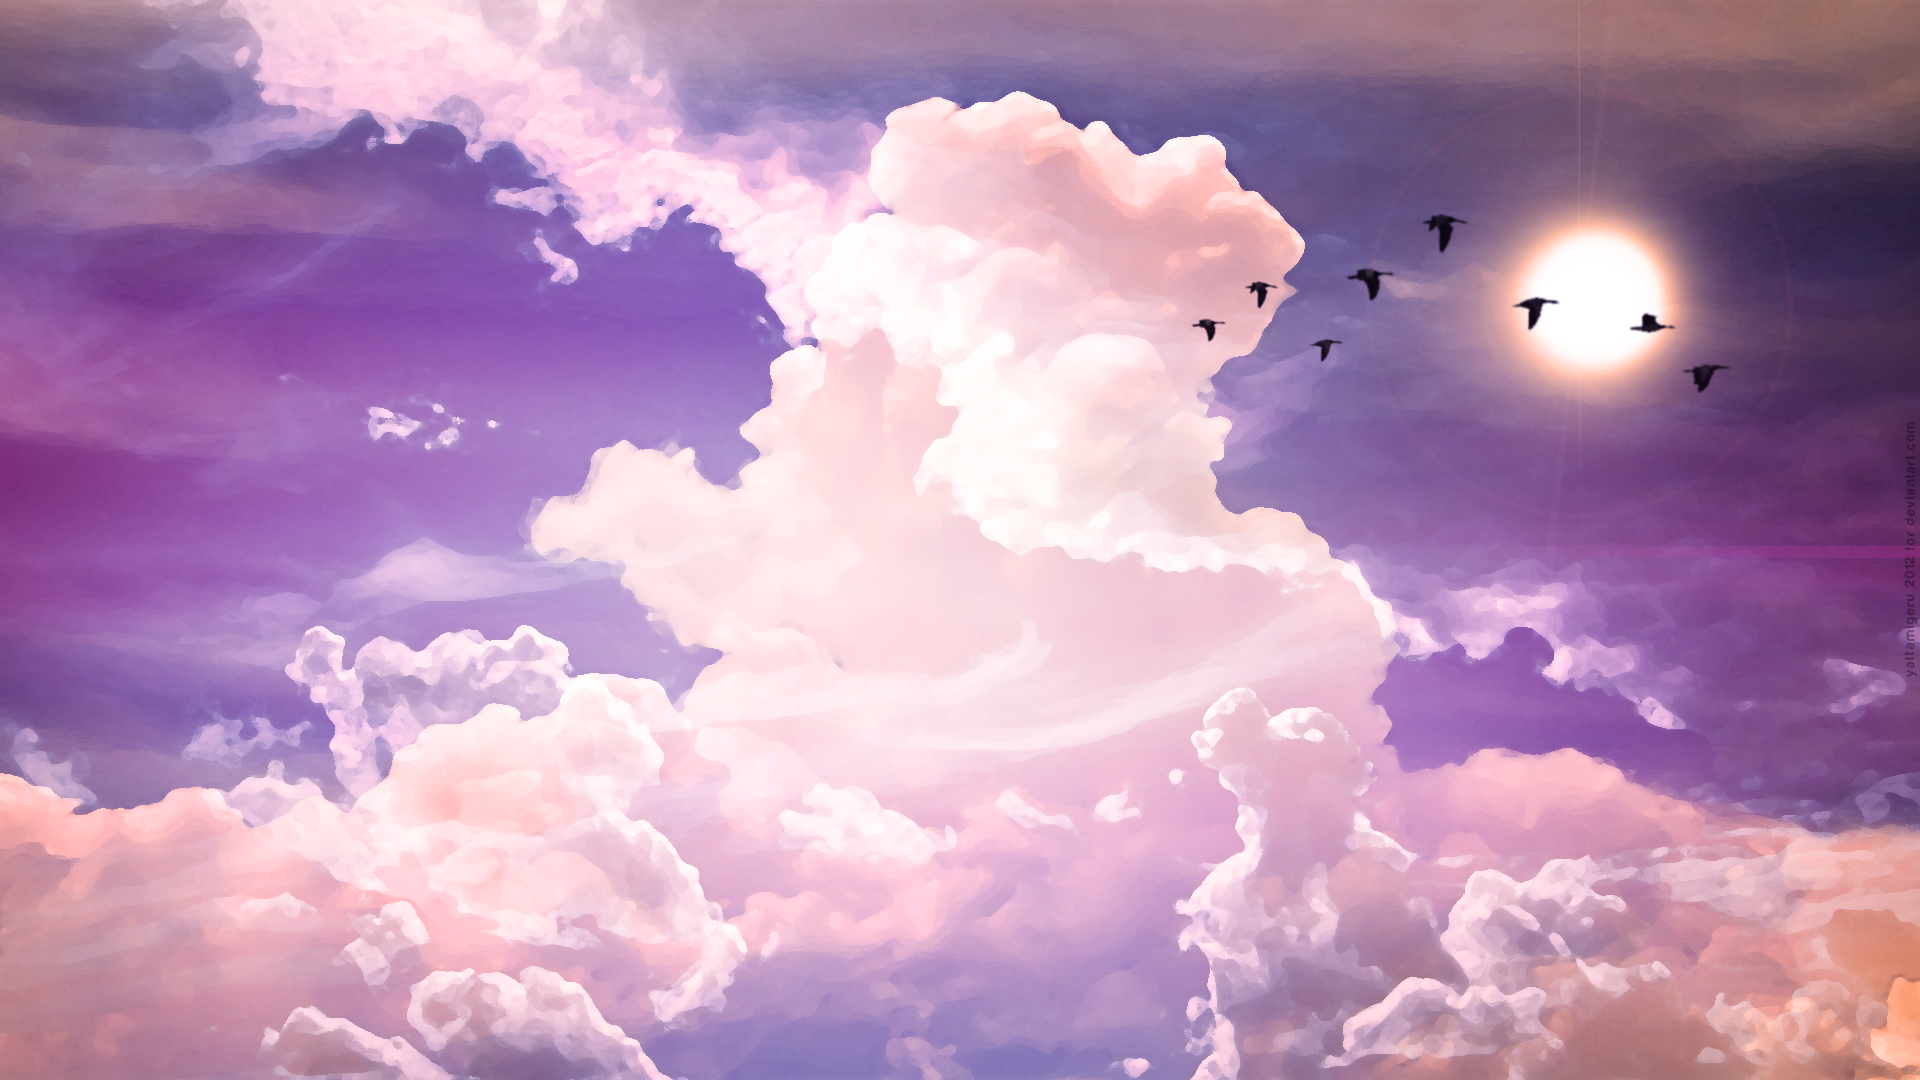 Birds flying by white puffy clouds full hd fond d 39 cran for Fond ecran tumblr